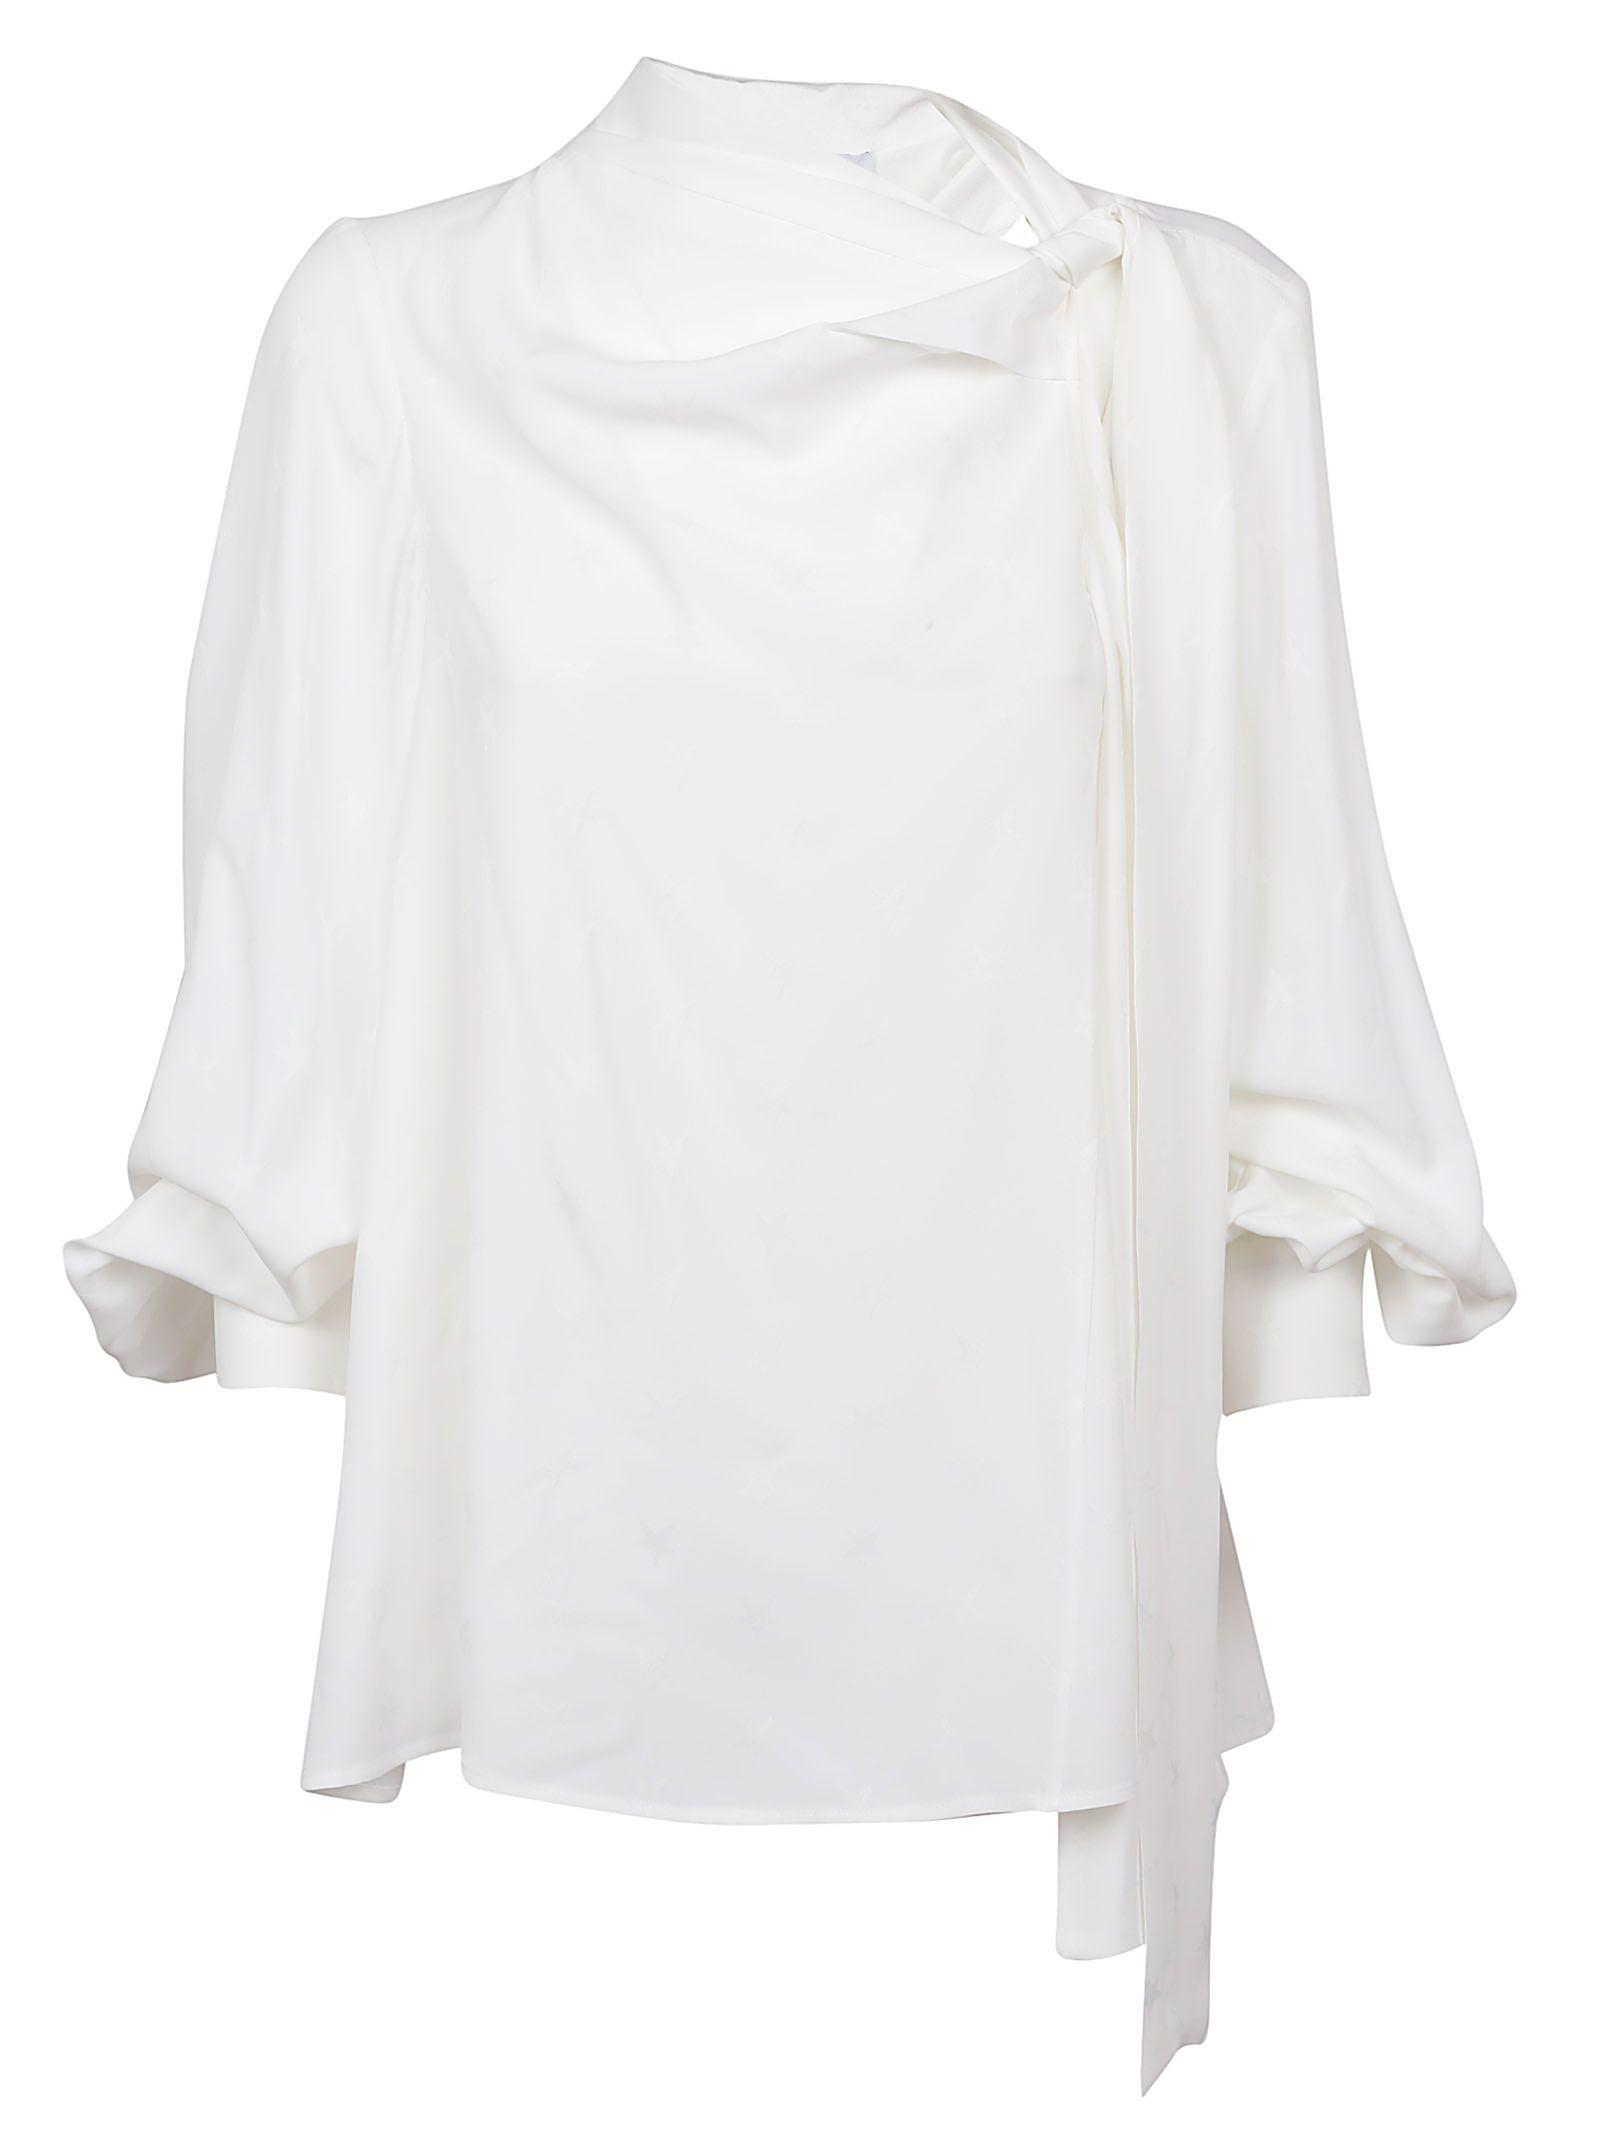 Msgm Lace Up Blouse In Bianco